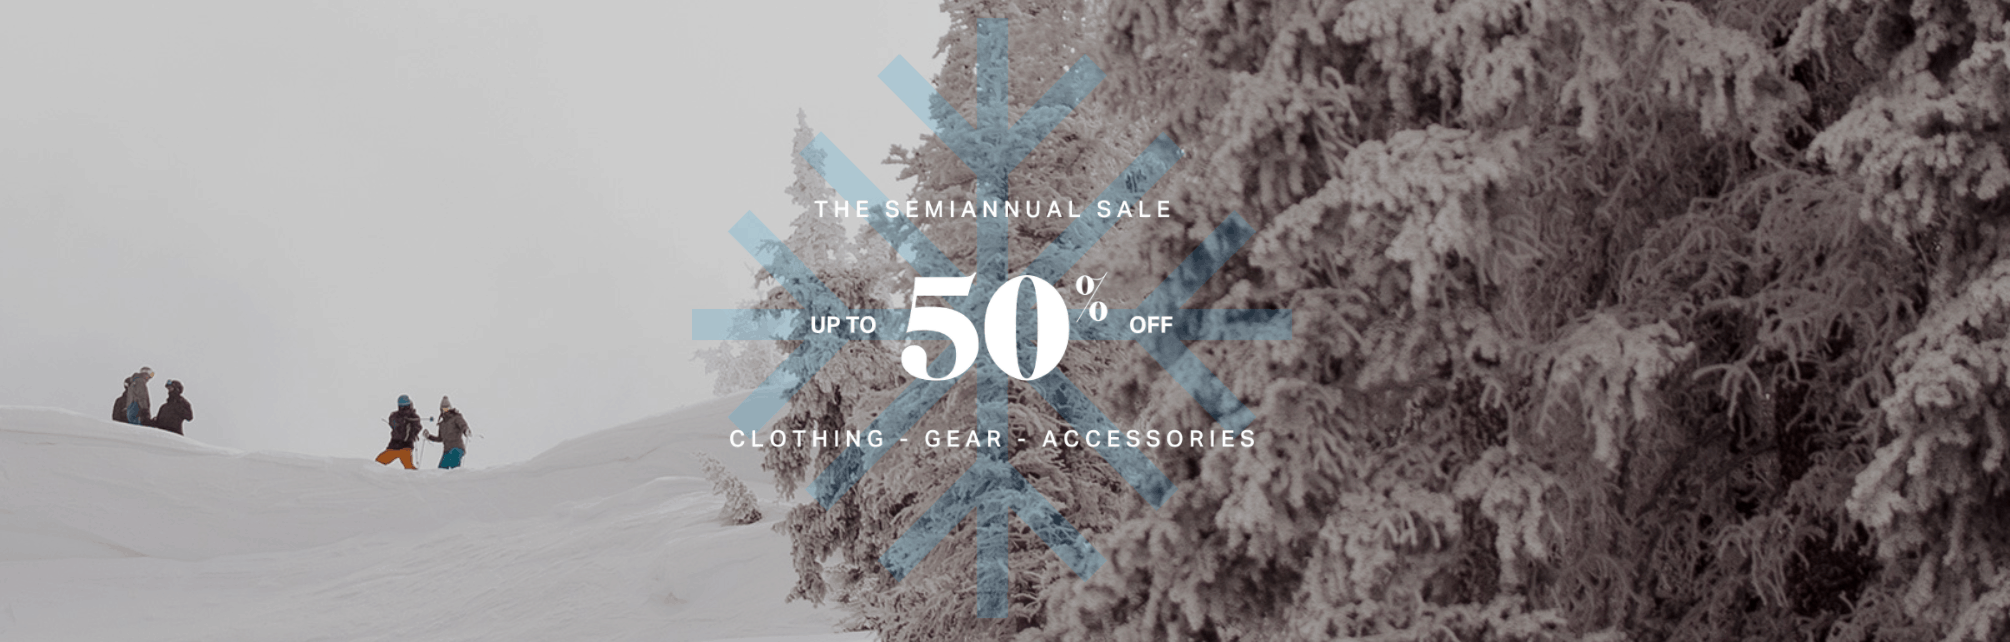 Backcountry Winter Sale 50% Off